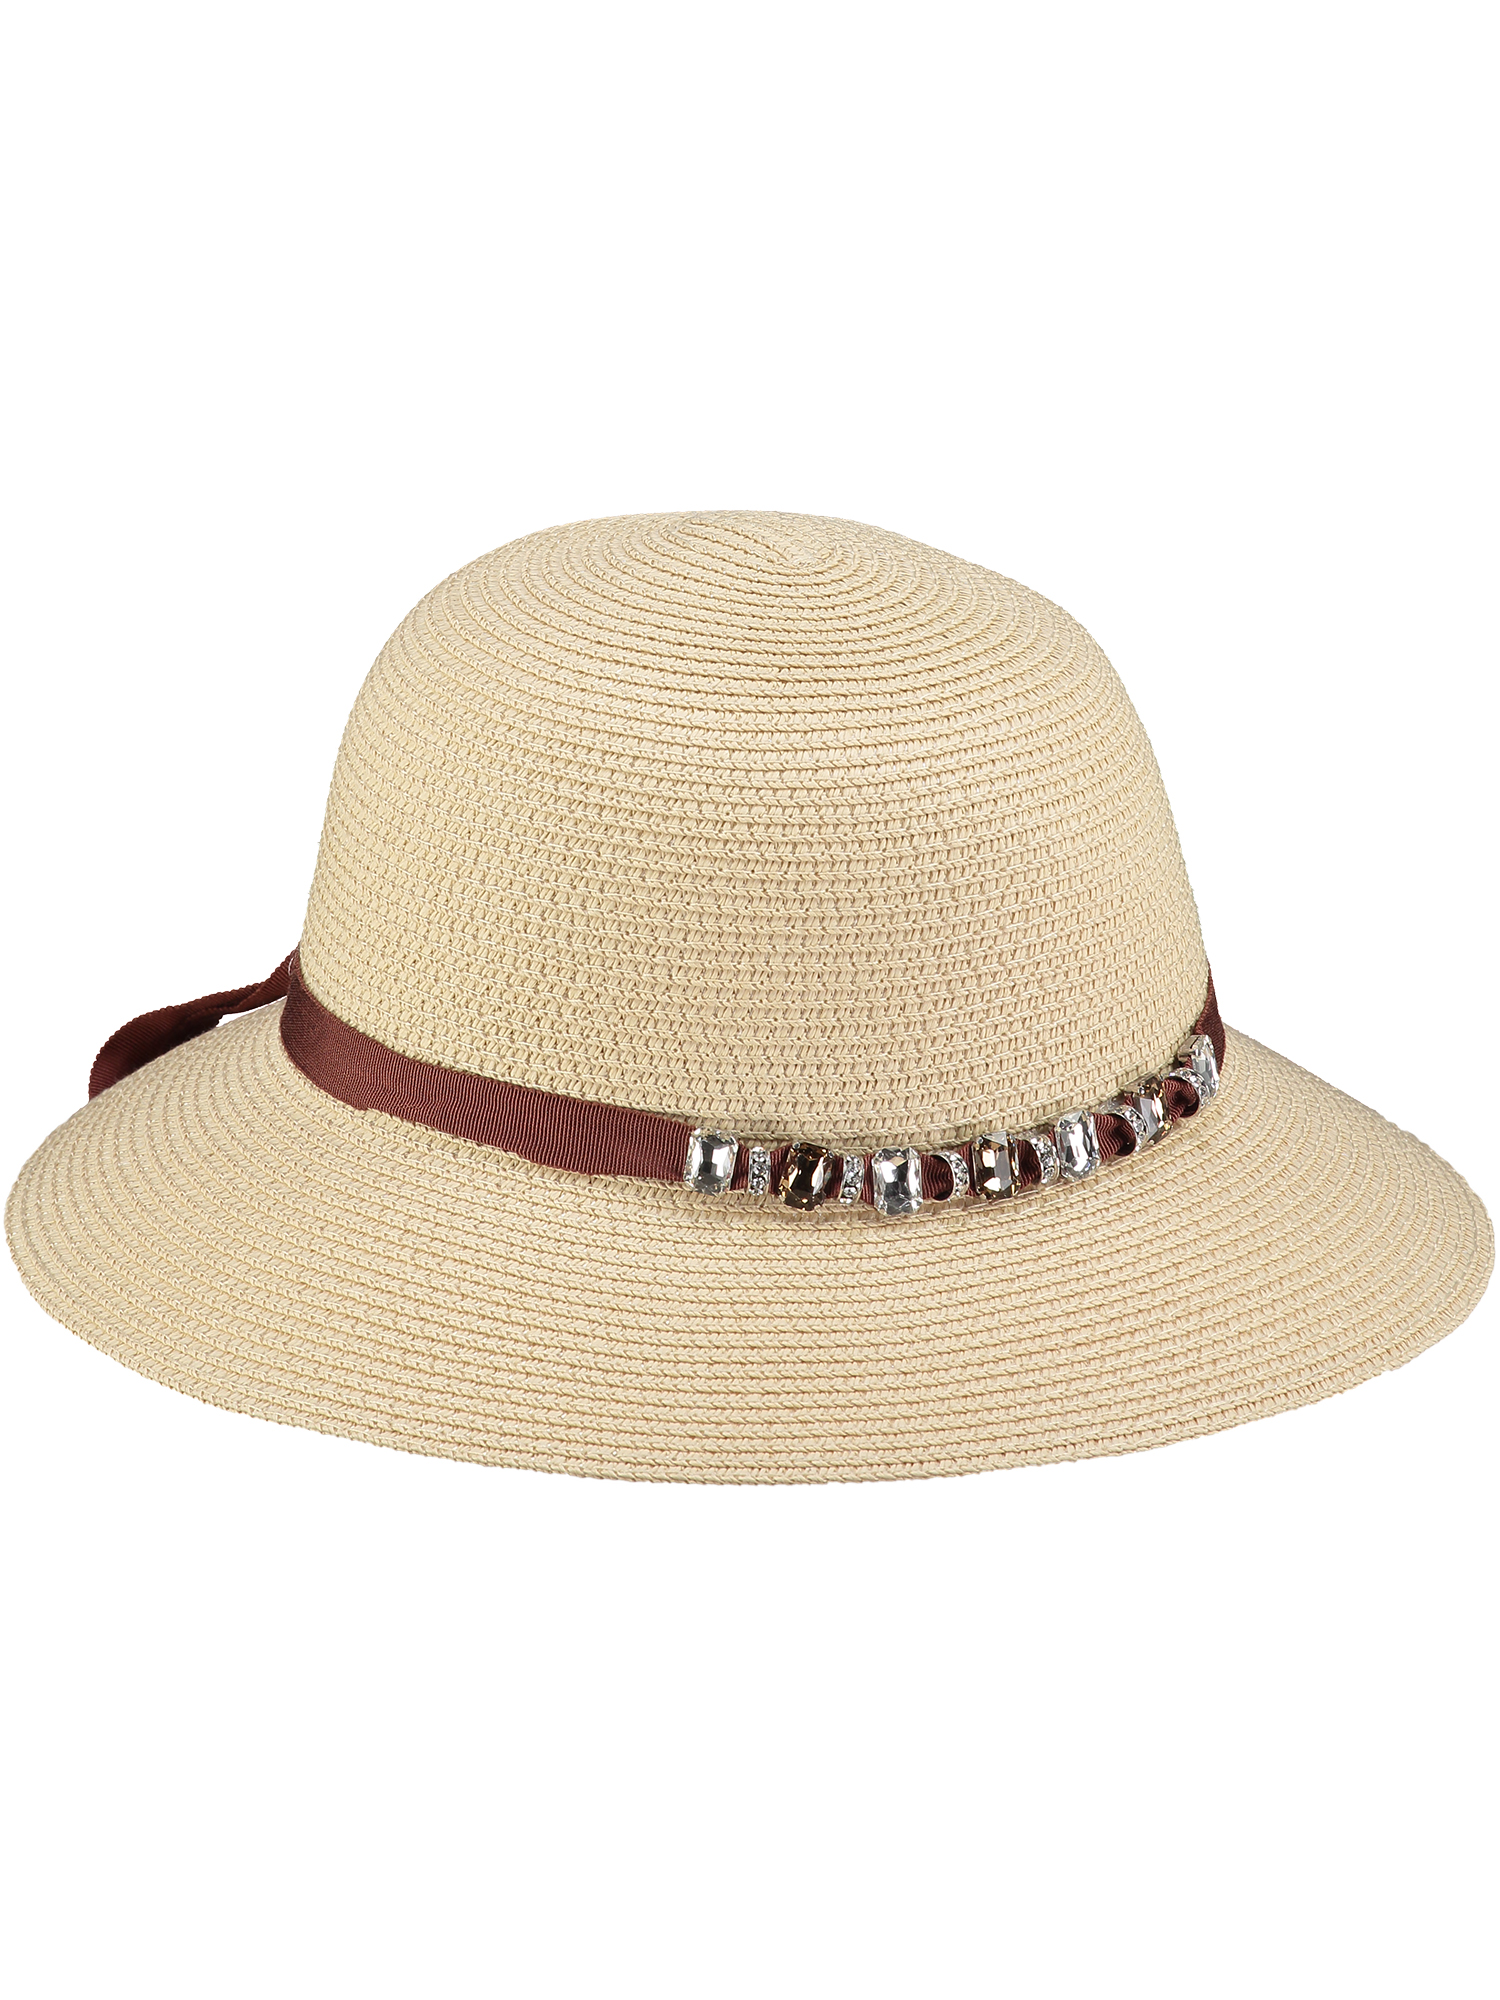 Natural Sun Hat with Crystals